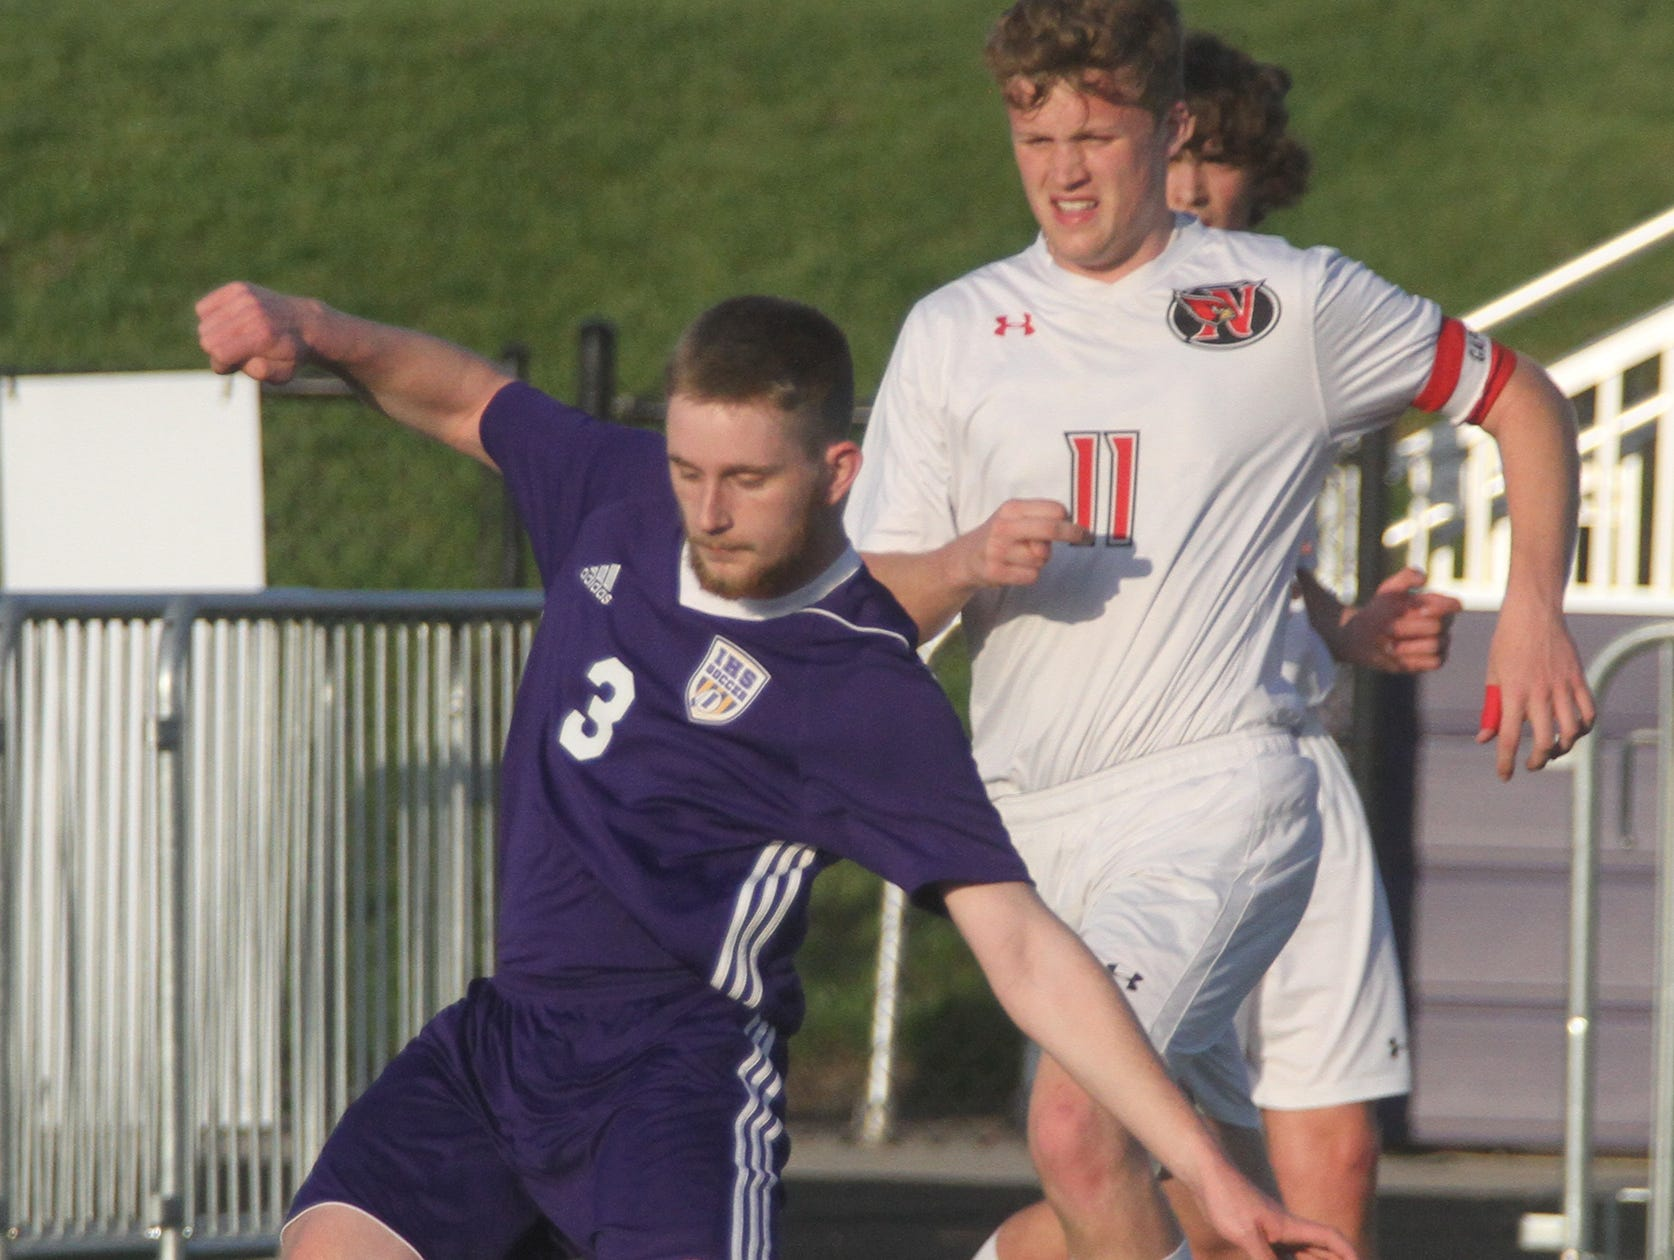 Indianola senior Parker Hansen fires a shot. Indianola beat Newton 2-0 at home in a Little Hawkeye Conference game.